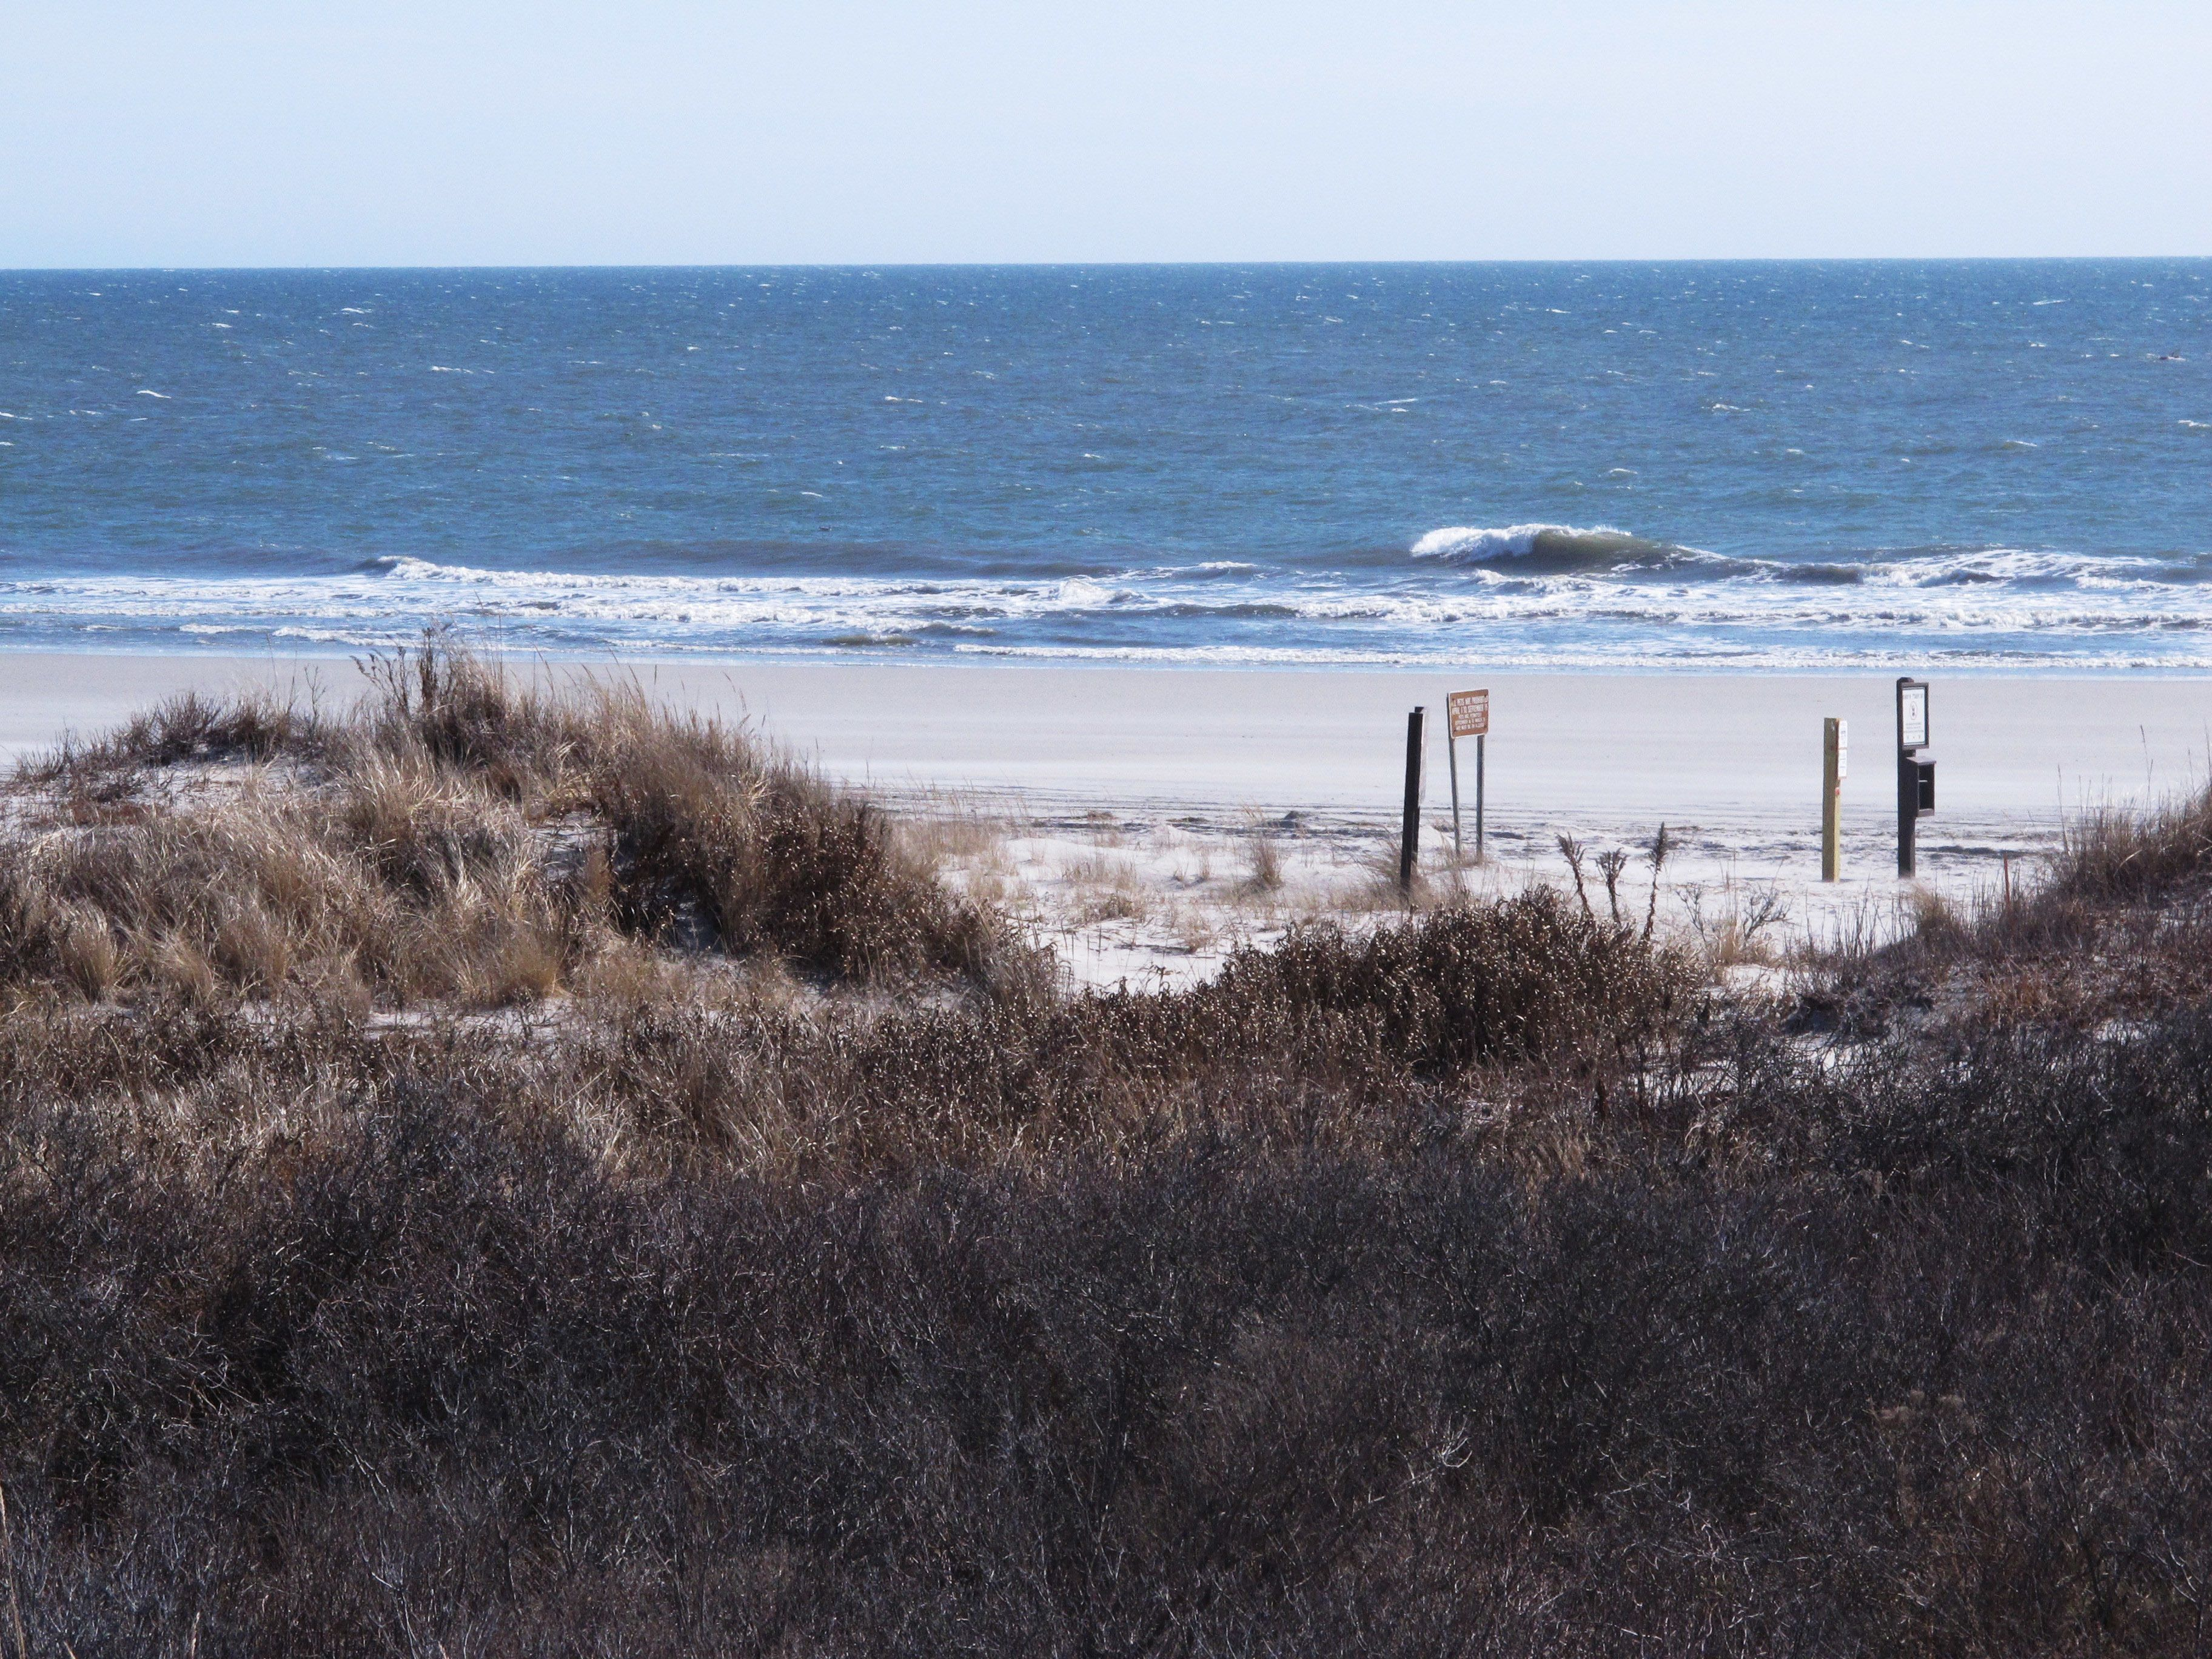 A view of the ocean at Brigantine along the Jersey Shore.